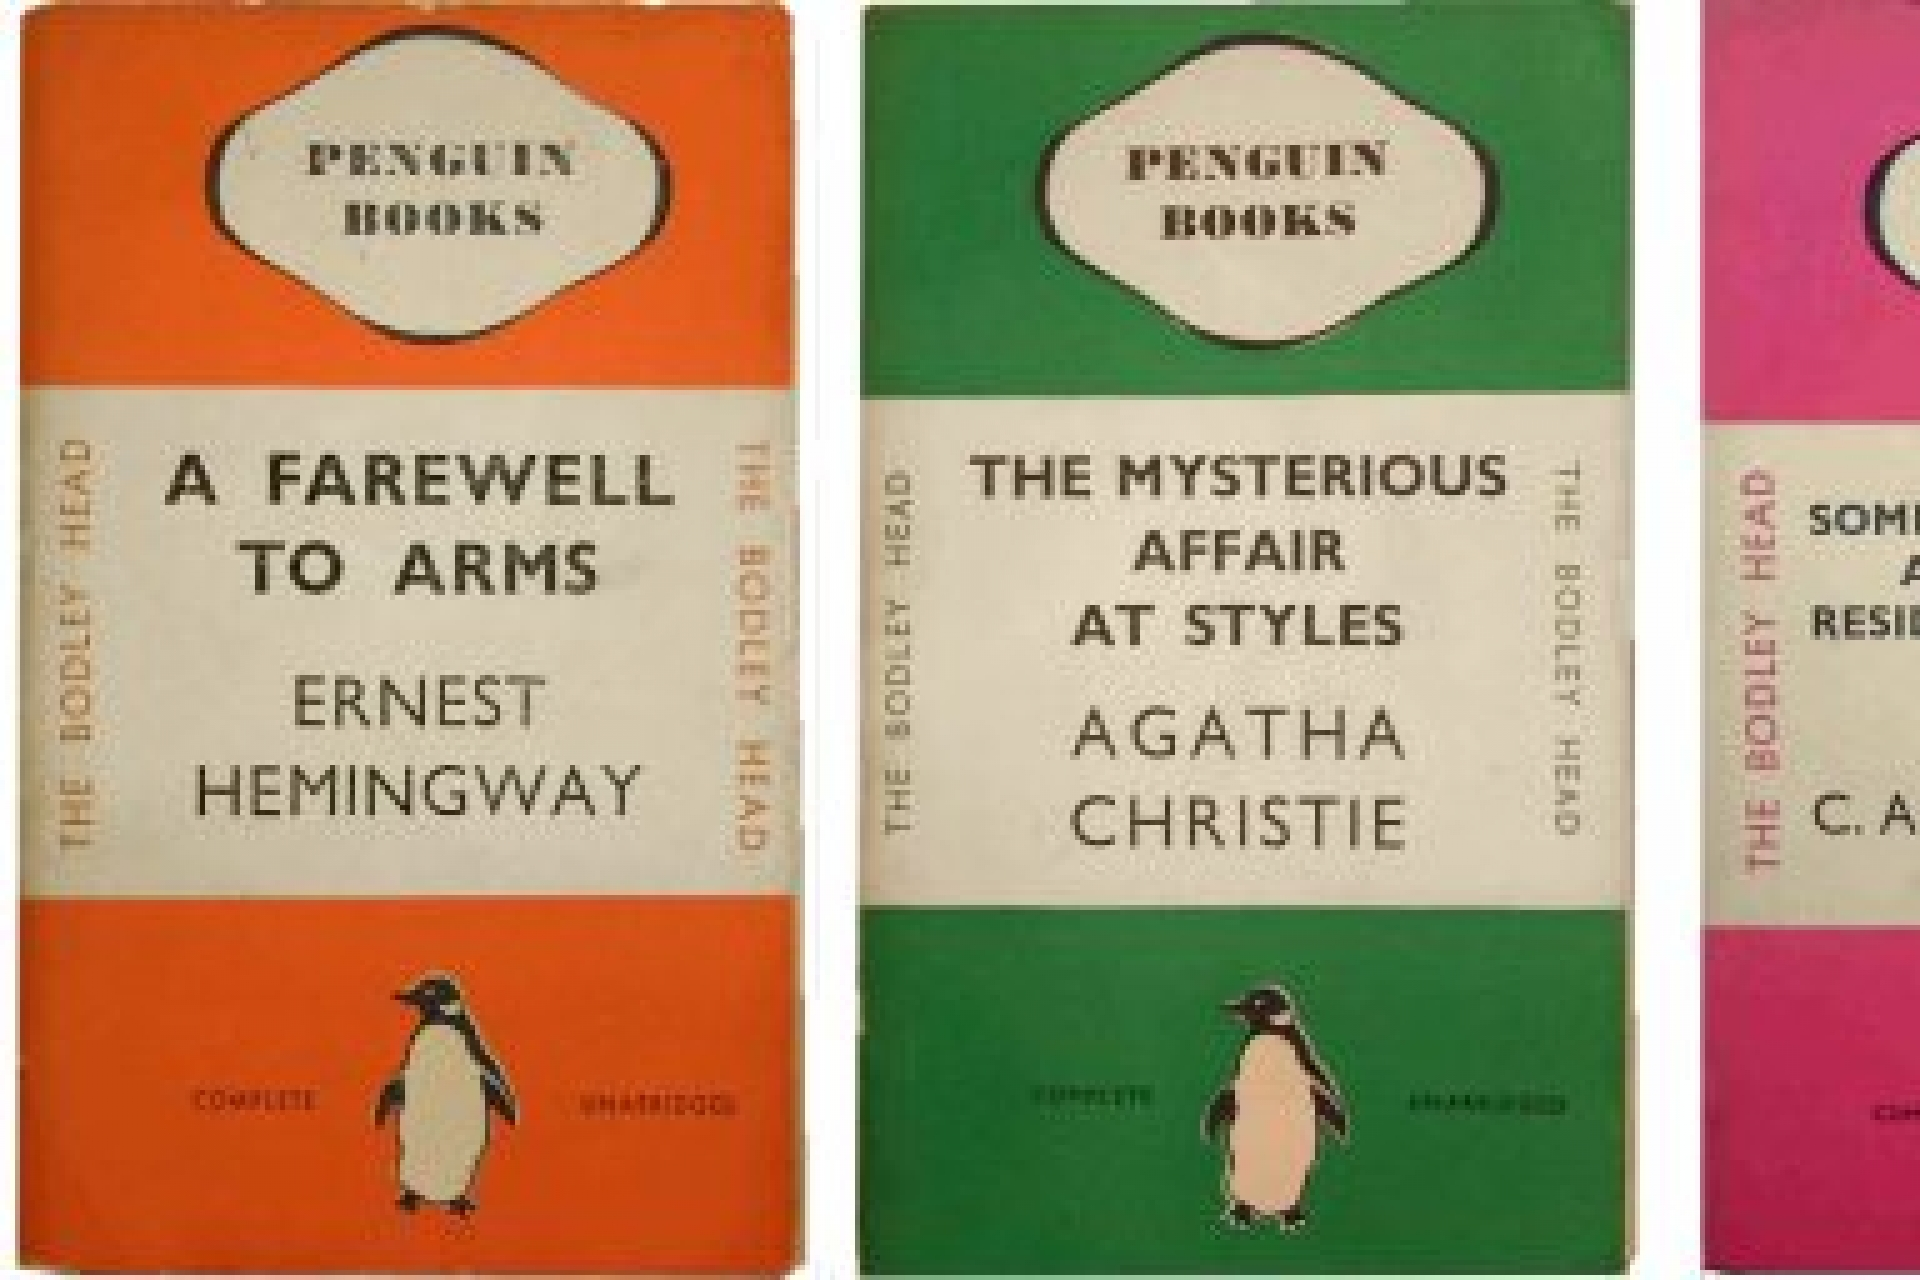 On this day July 30, in 1935 Penguin published the first paperback books